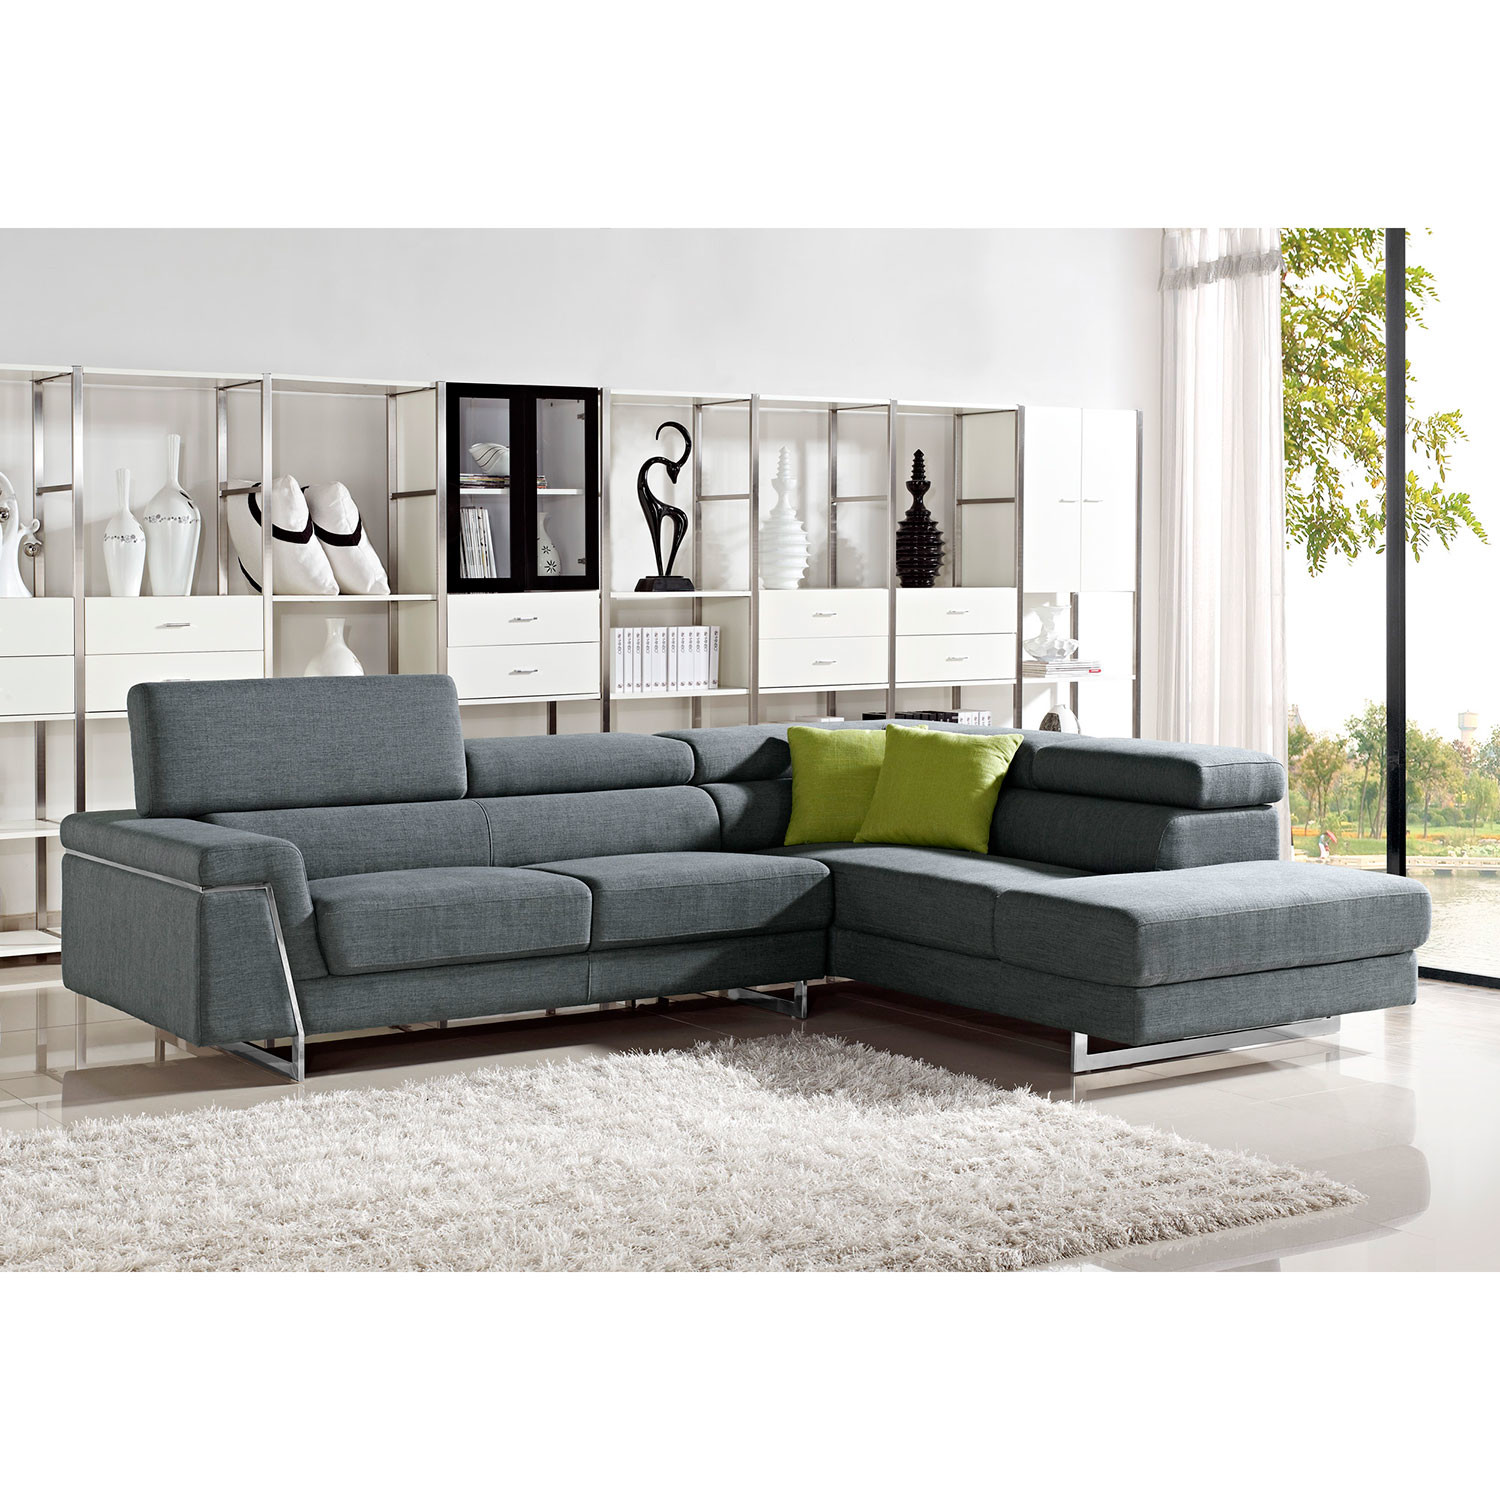 Sectional Sofa Sale Houston: Divani Casa Darby Modern Fabric Sectional Sofa Set